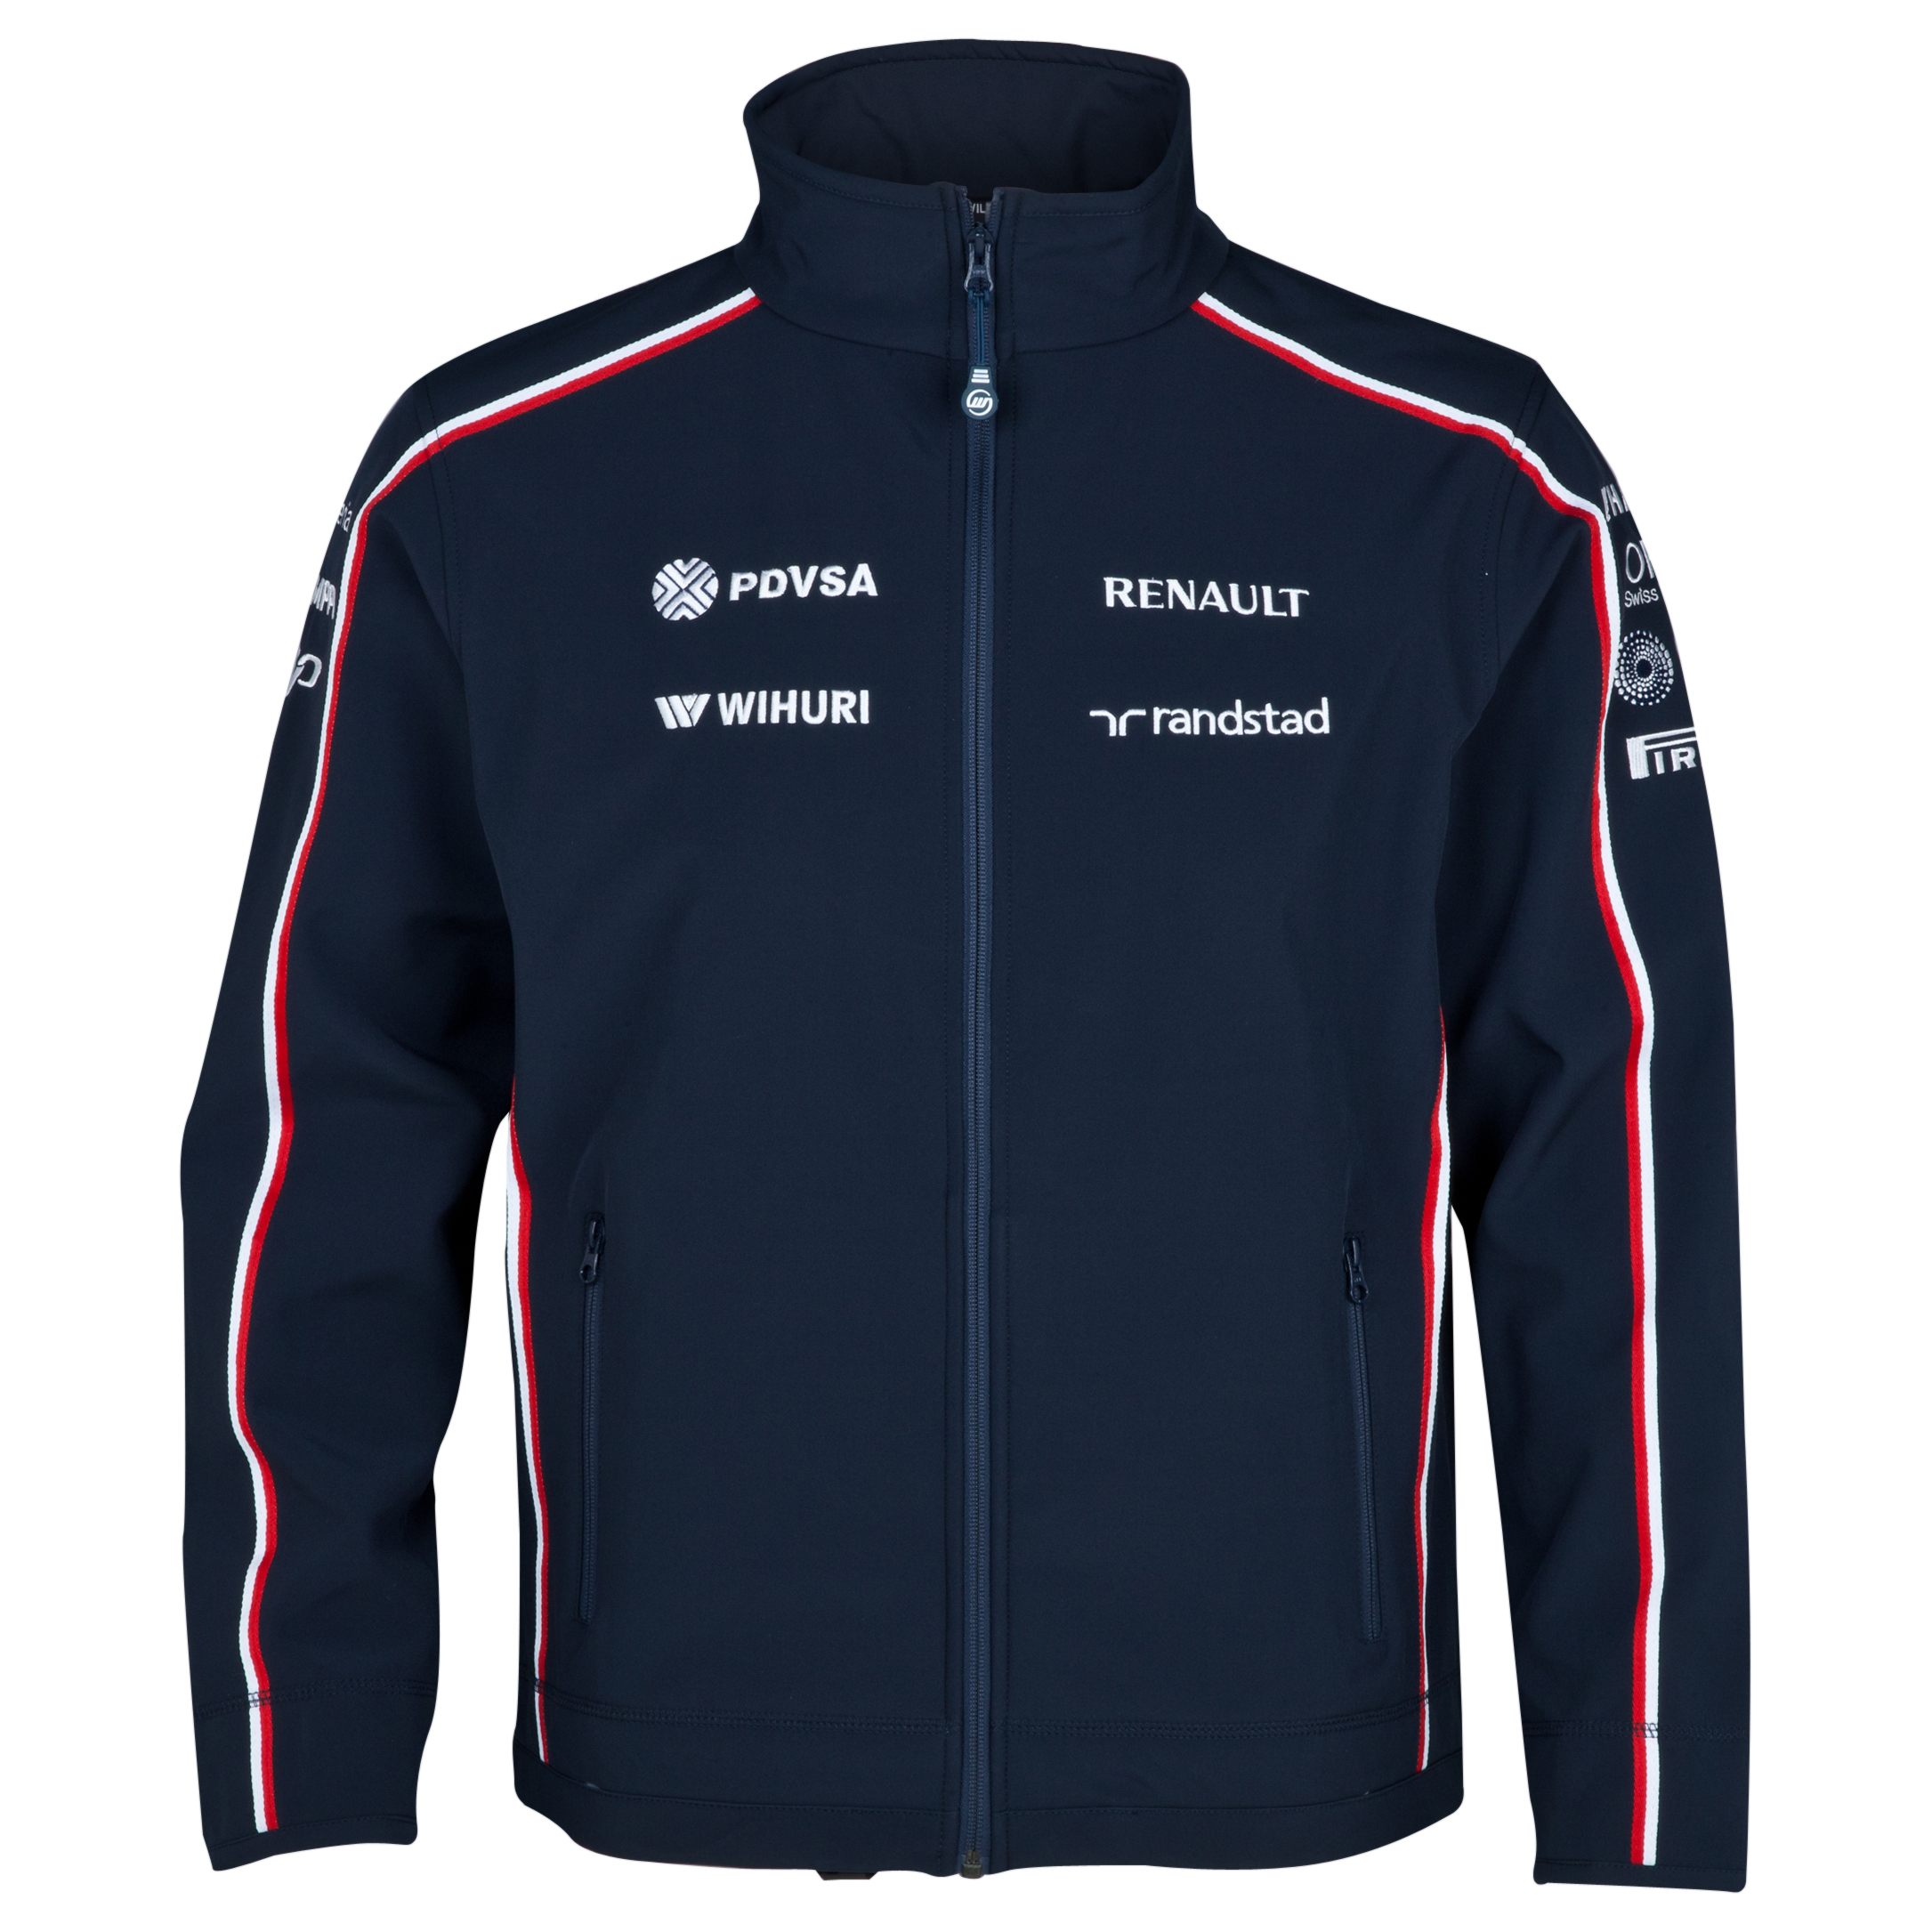 WILLIAMS F1 Team 2013 Replica Softshell Jacket